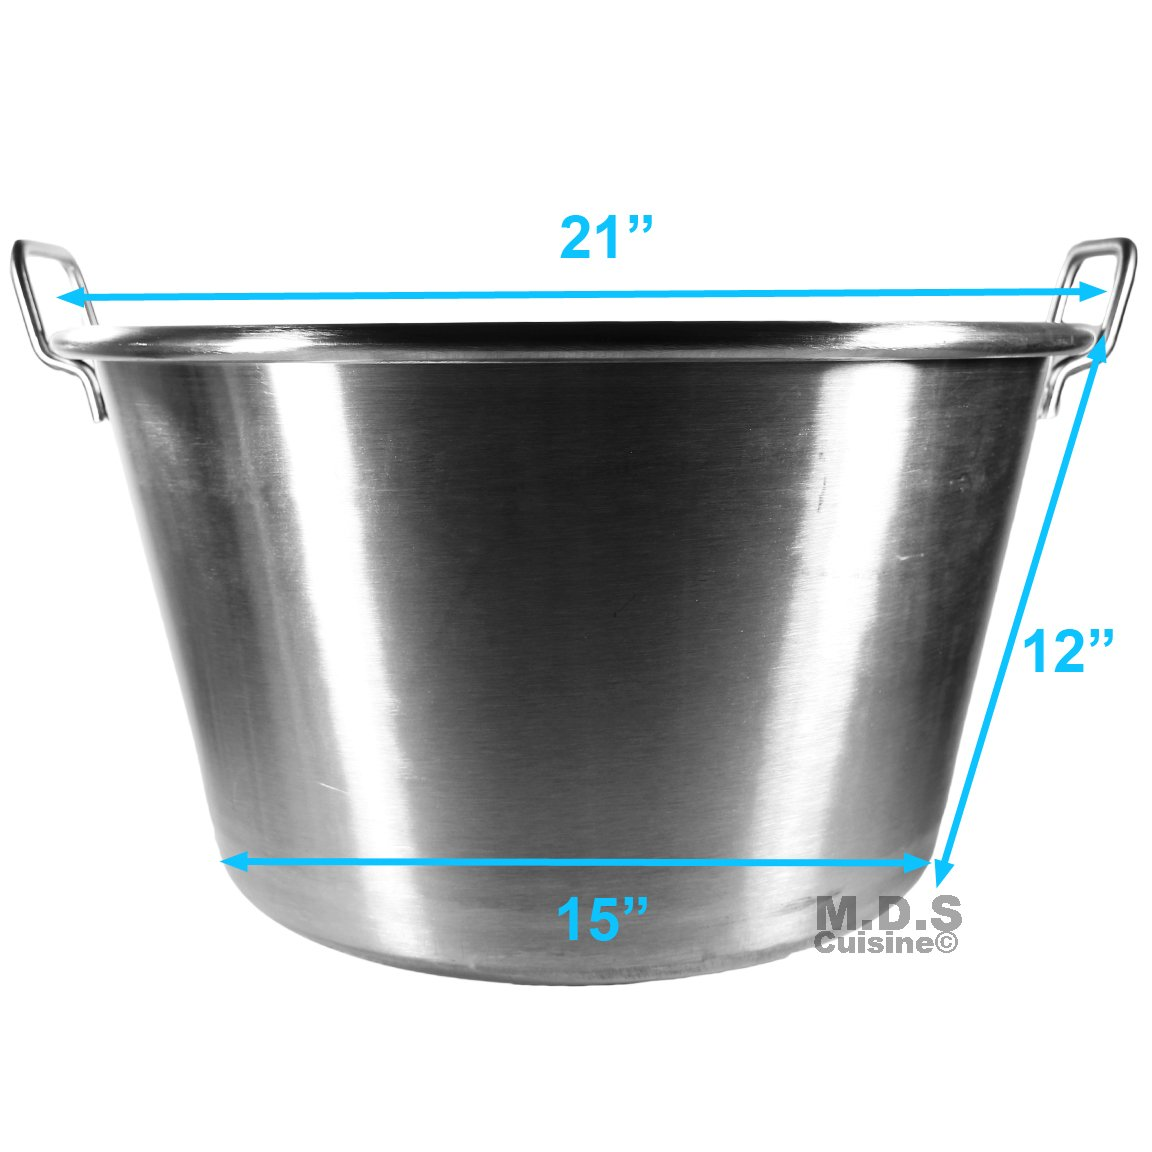 Large Cazo Stainless Steel 21'' Caso para Carnitas Gas Heavy Duty Wok Acero Inoxidable by M.D.S Cuisine Cookwares (Image #3)